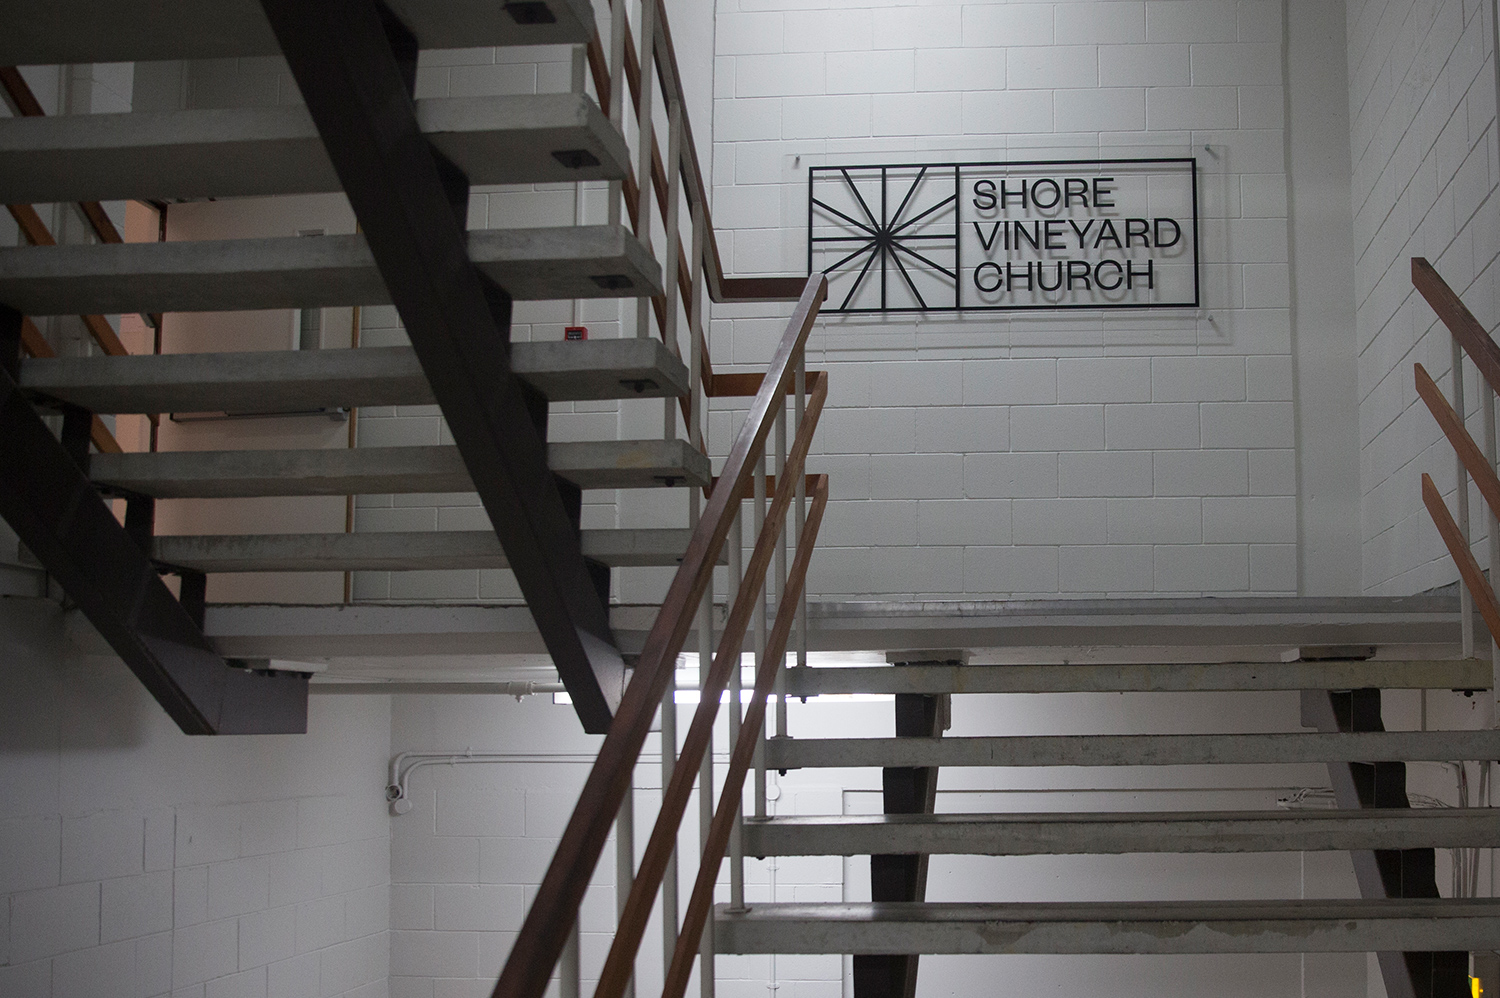 Stairs to the hallway